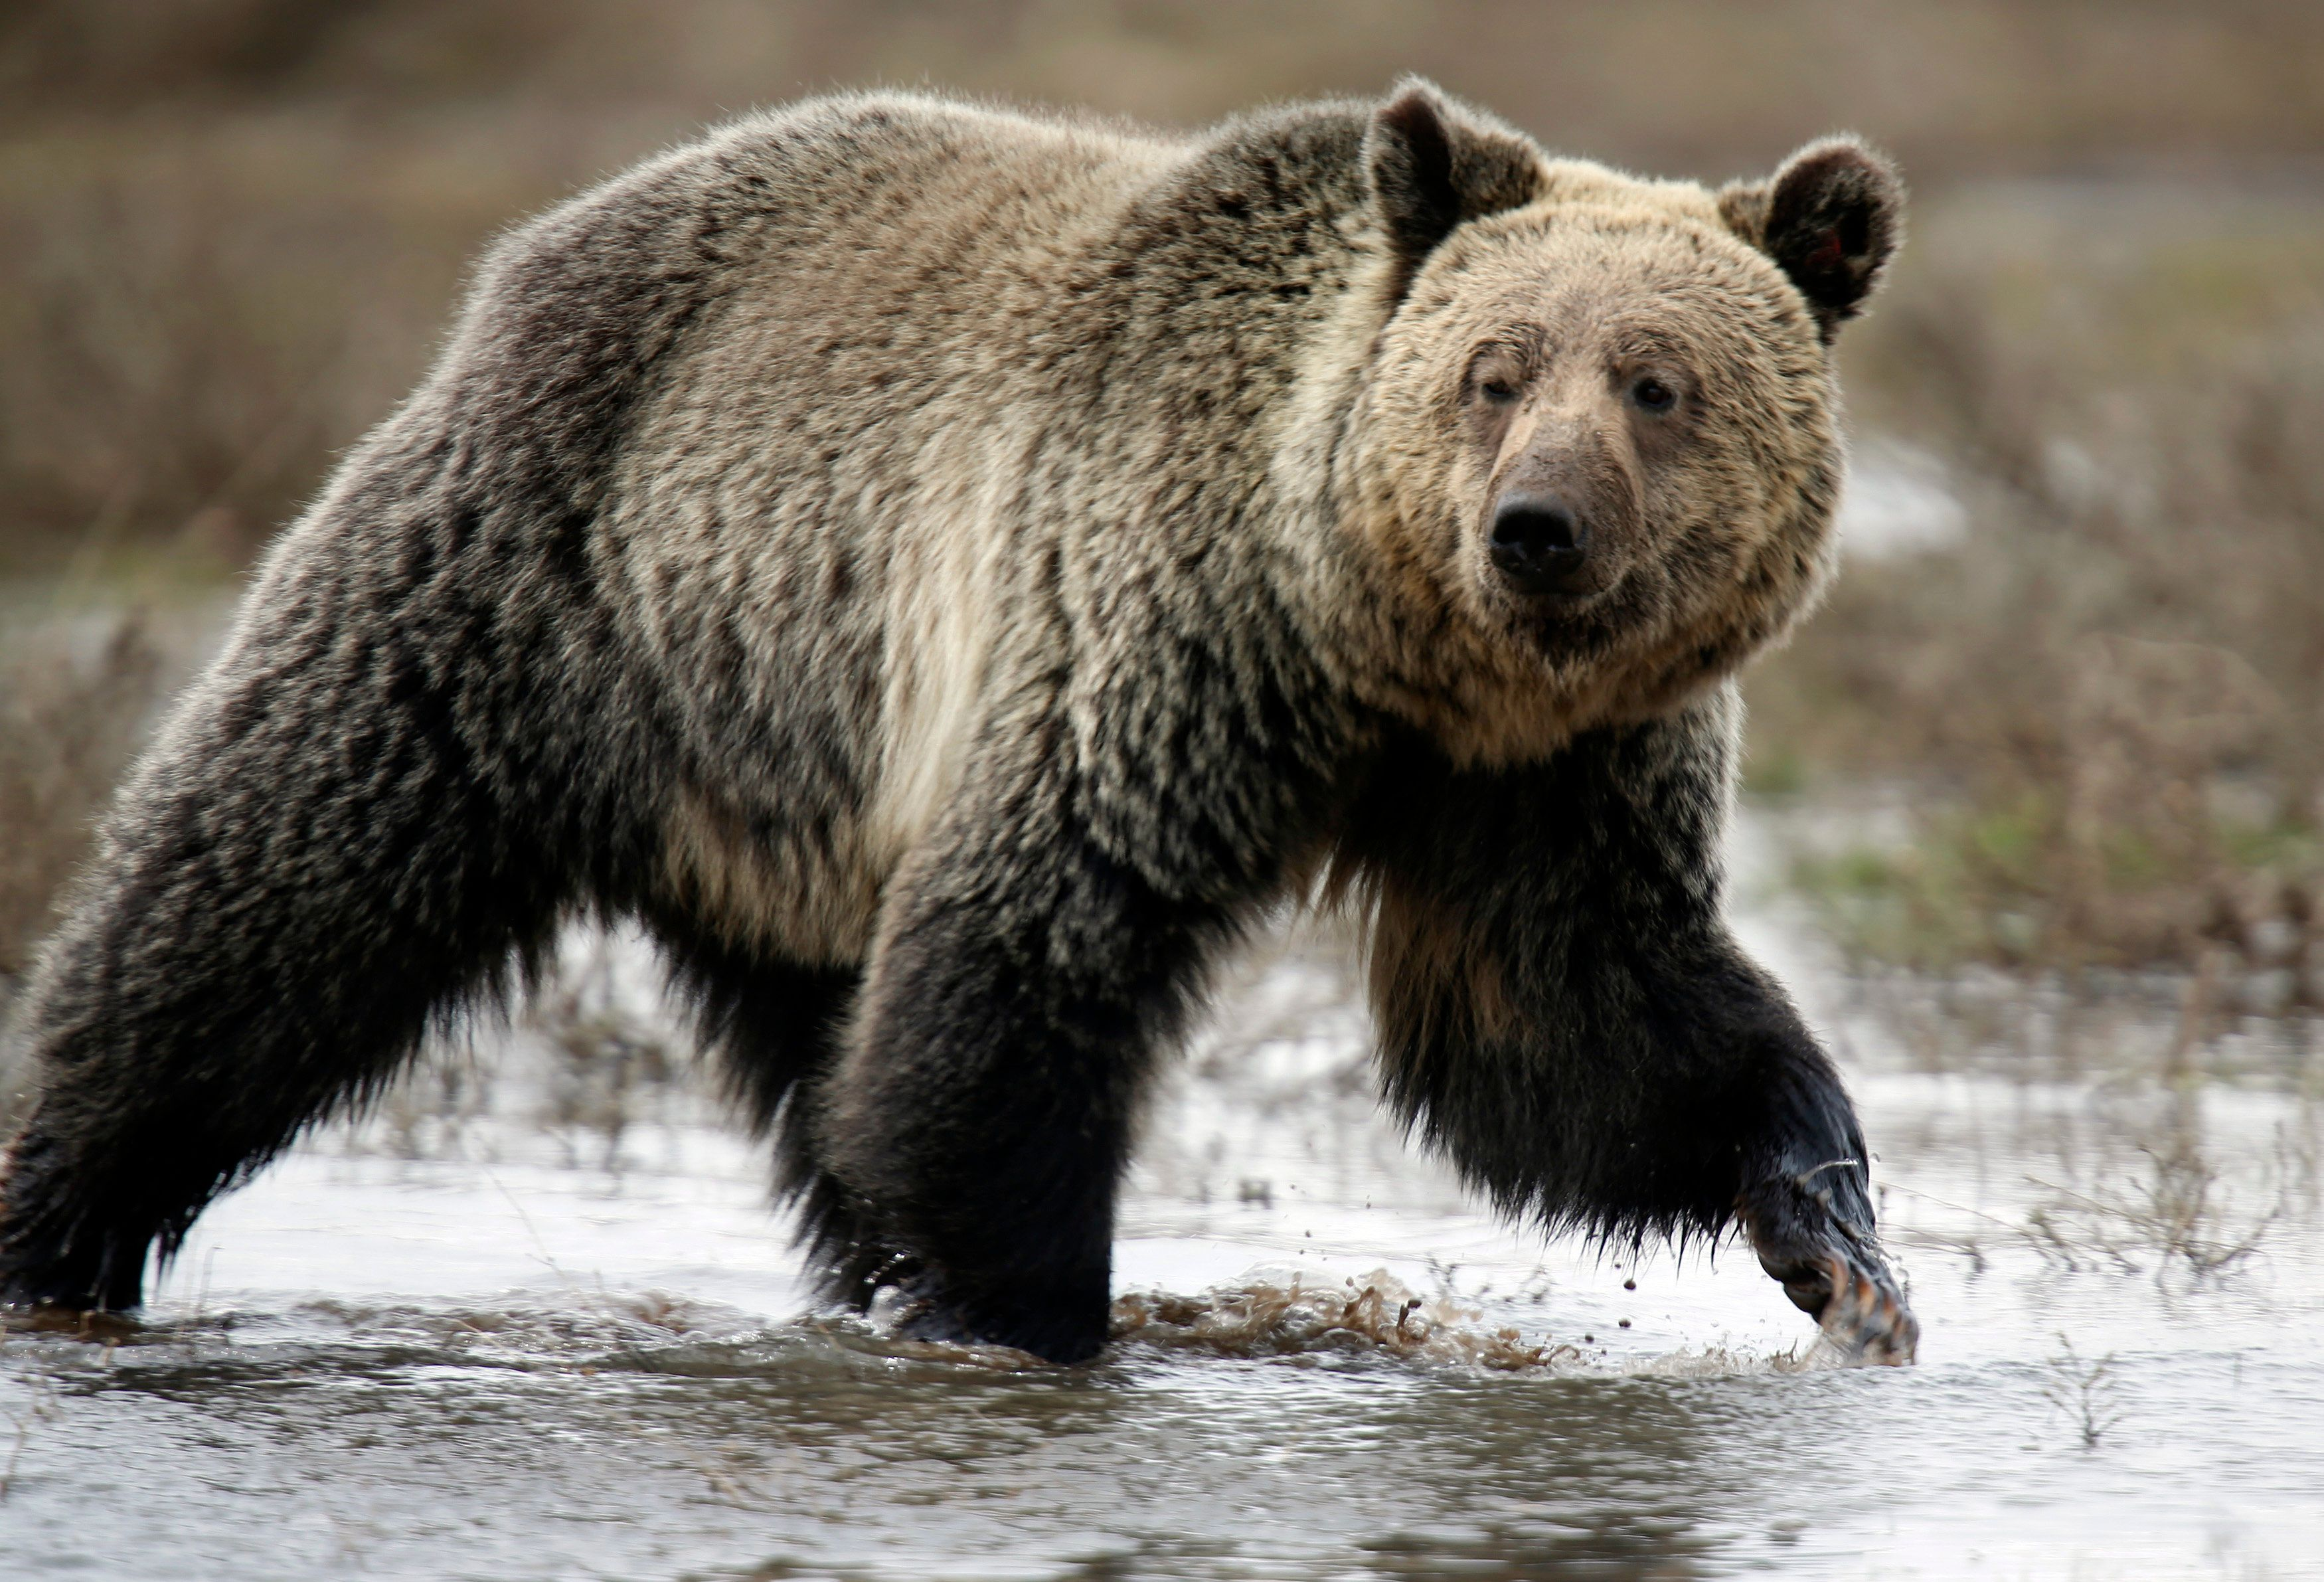 A grizzly bear roams through the Hayden Valley in Yellowstone National Park in Wyoming, May 18, 2014. The nearly 3,500 square mile park straddling the states of Wyoming, Montana and Idaho was founded in 1872 as America's first national park. Picture taken May 18, 2014. REUTERS/Jim Urquhart (UNITED STATES)